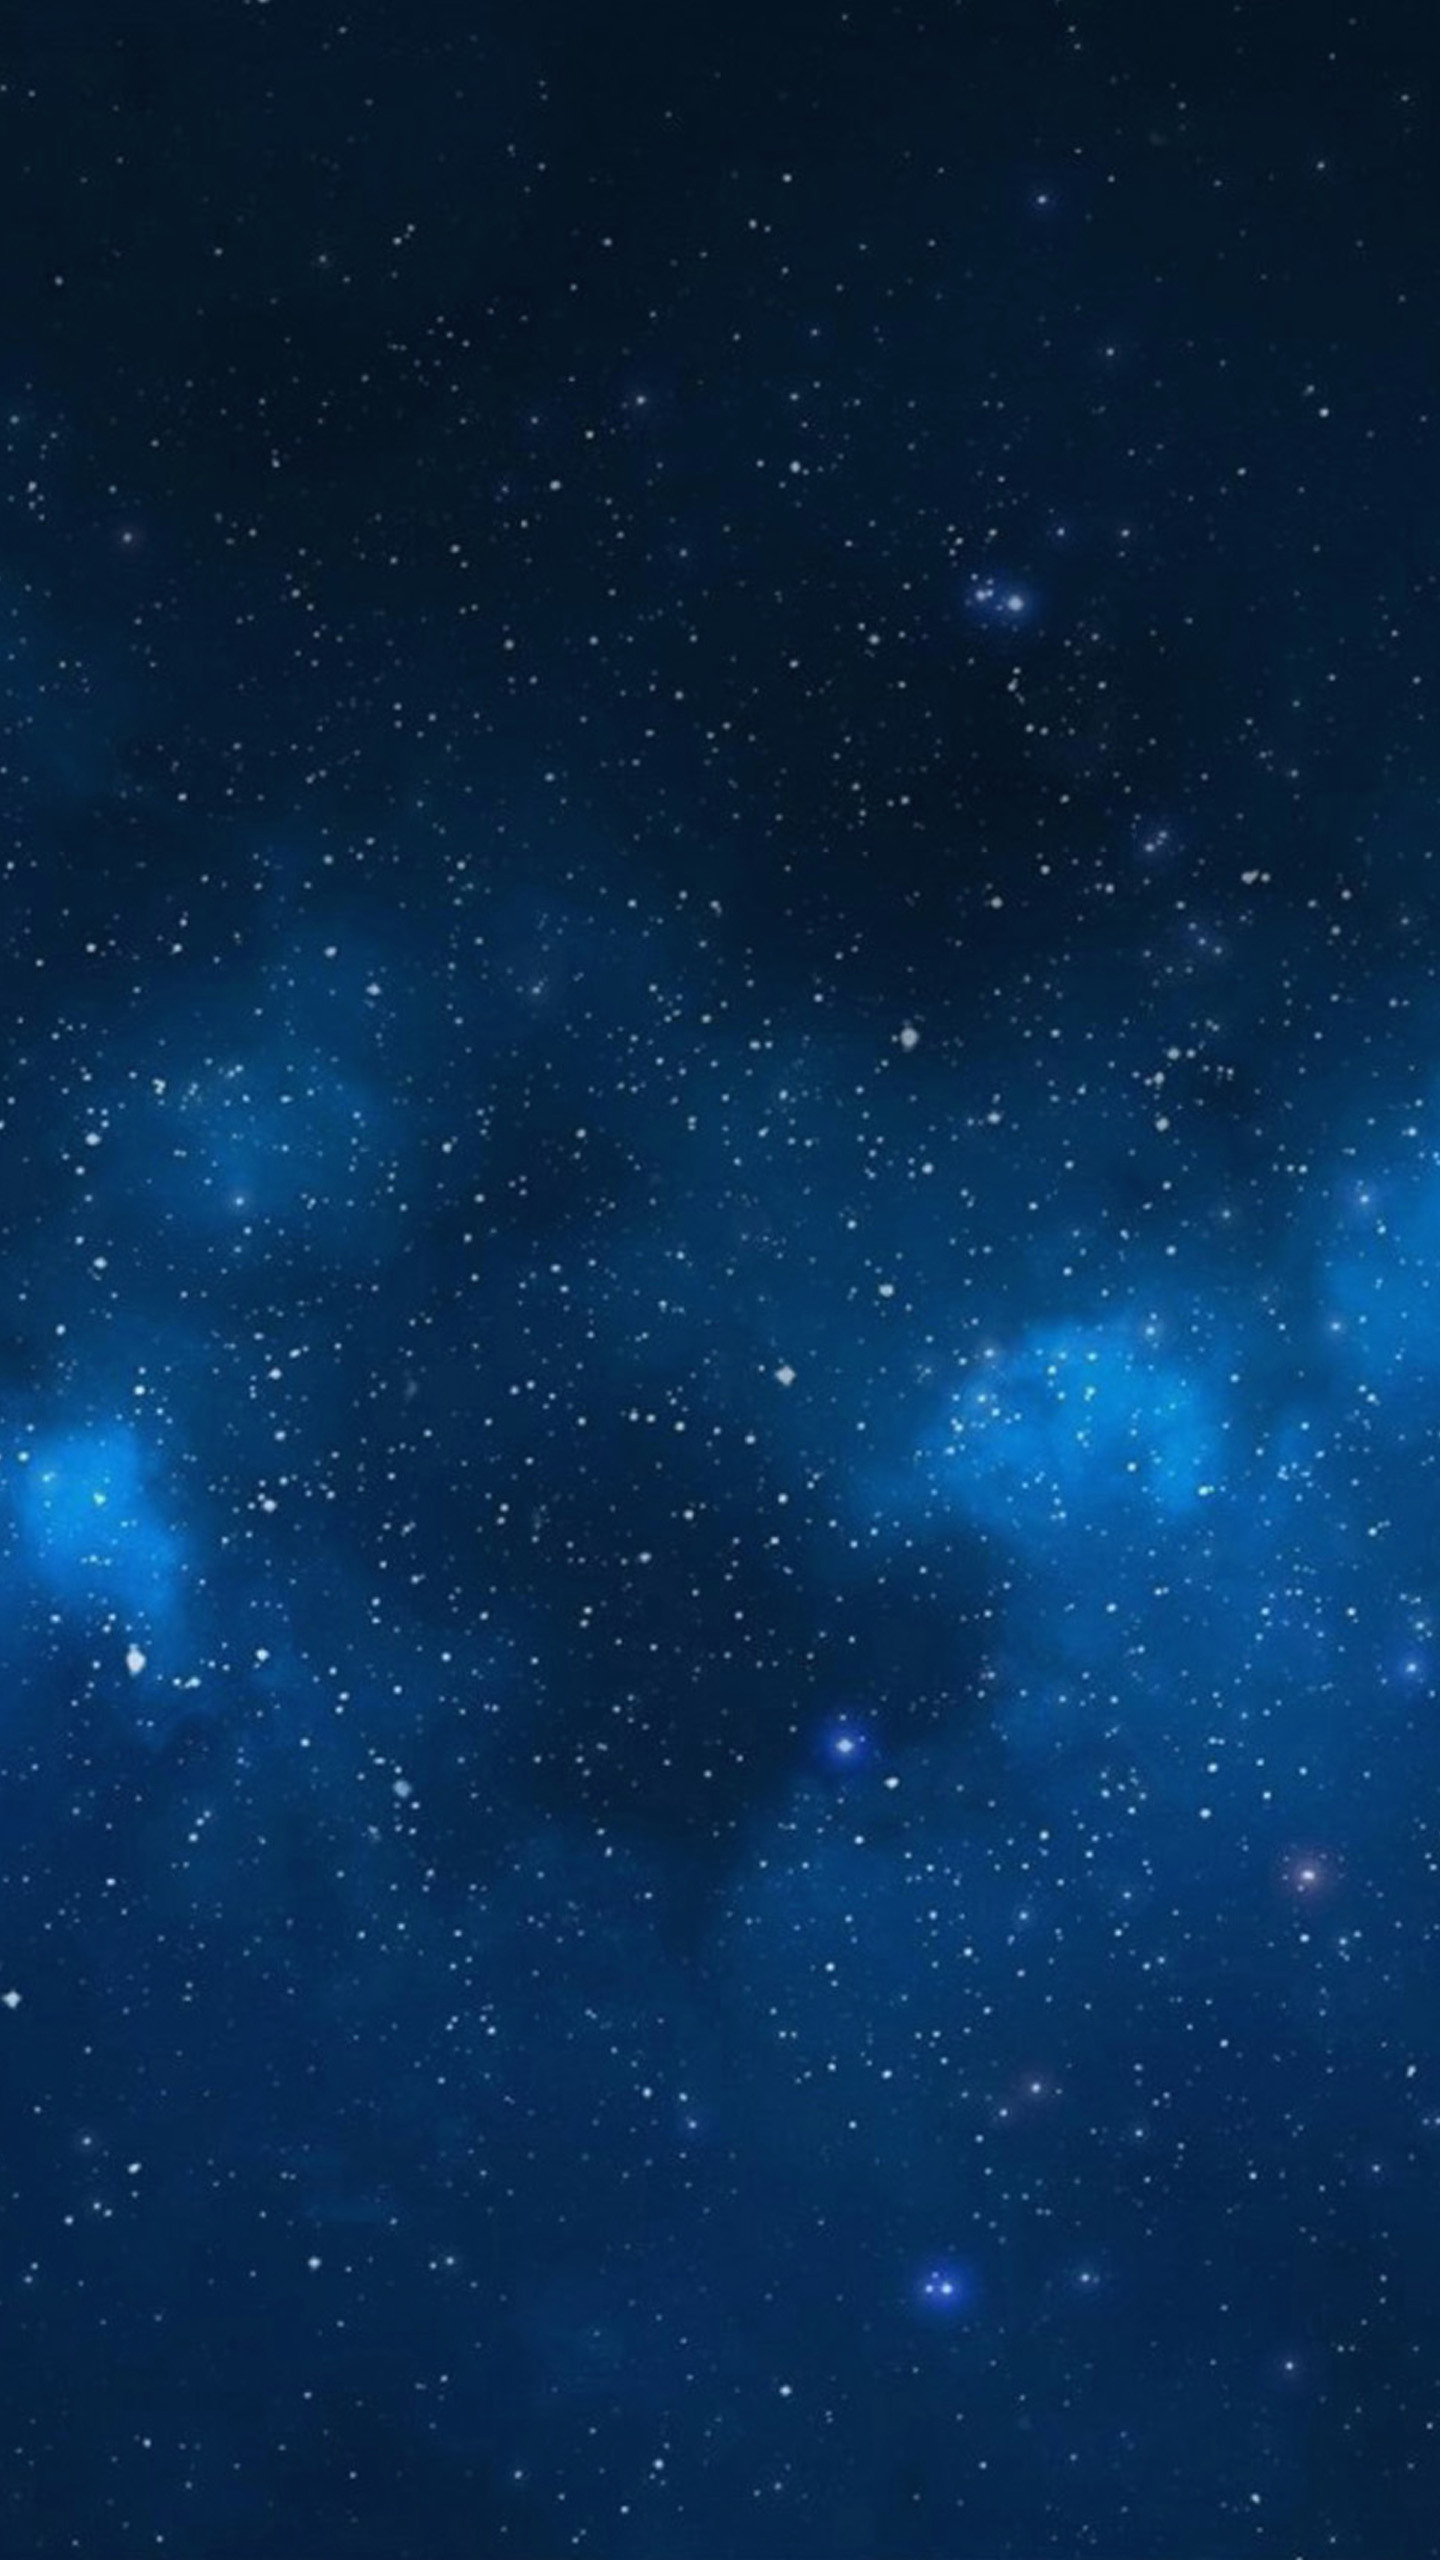 Galaxy Blue Wallpaper Iphone 8 78257 Hd Wallpaper Backgrounds Download